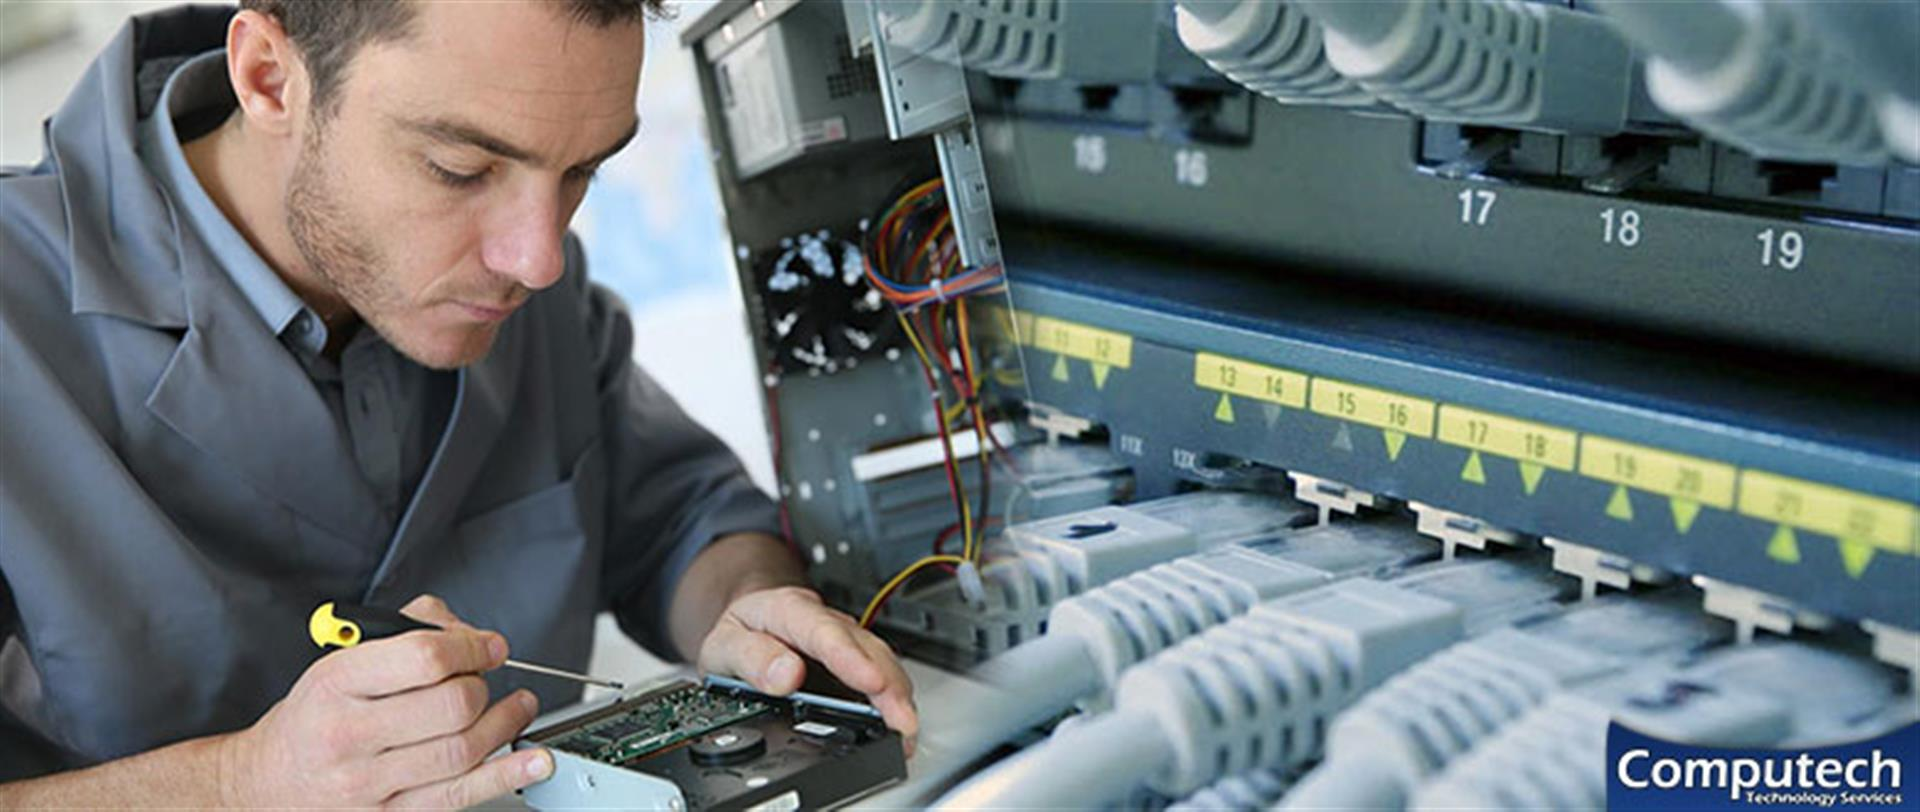 Chattanooga Tennessee On Site Computer PC & Printer Repair, Network, Voice & Data Cabling Services